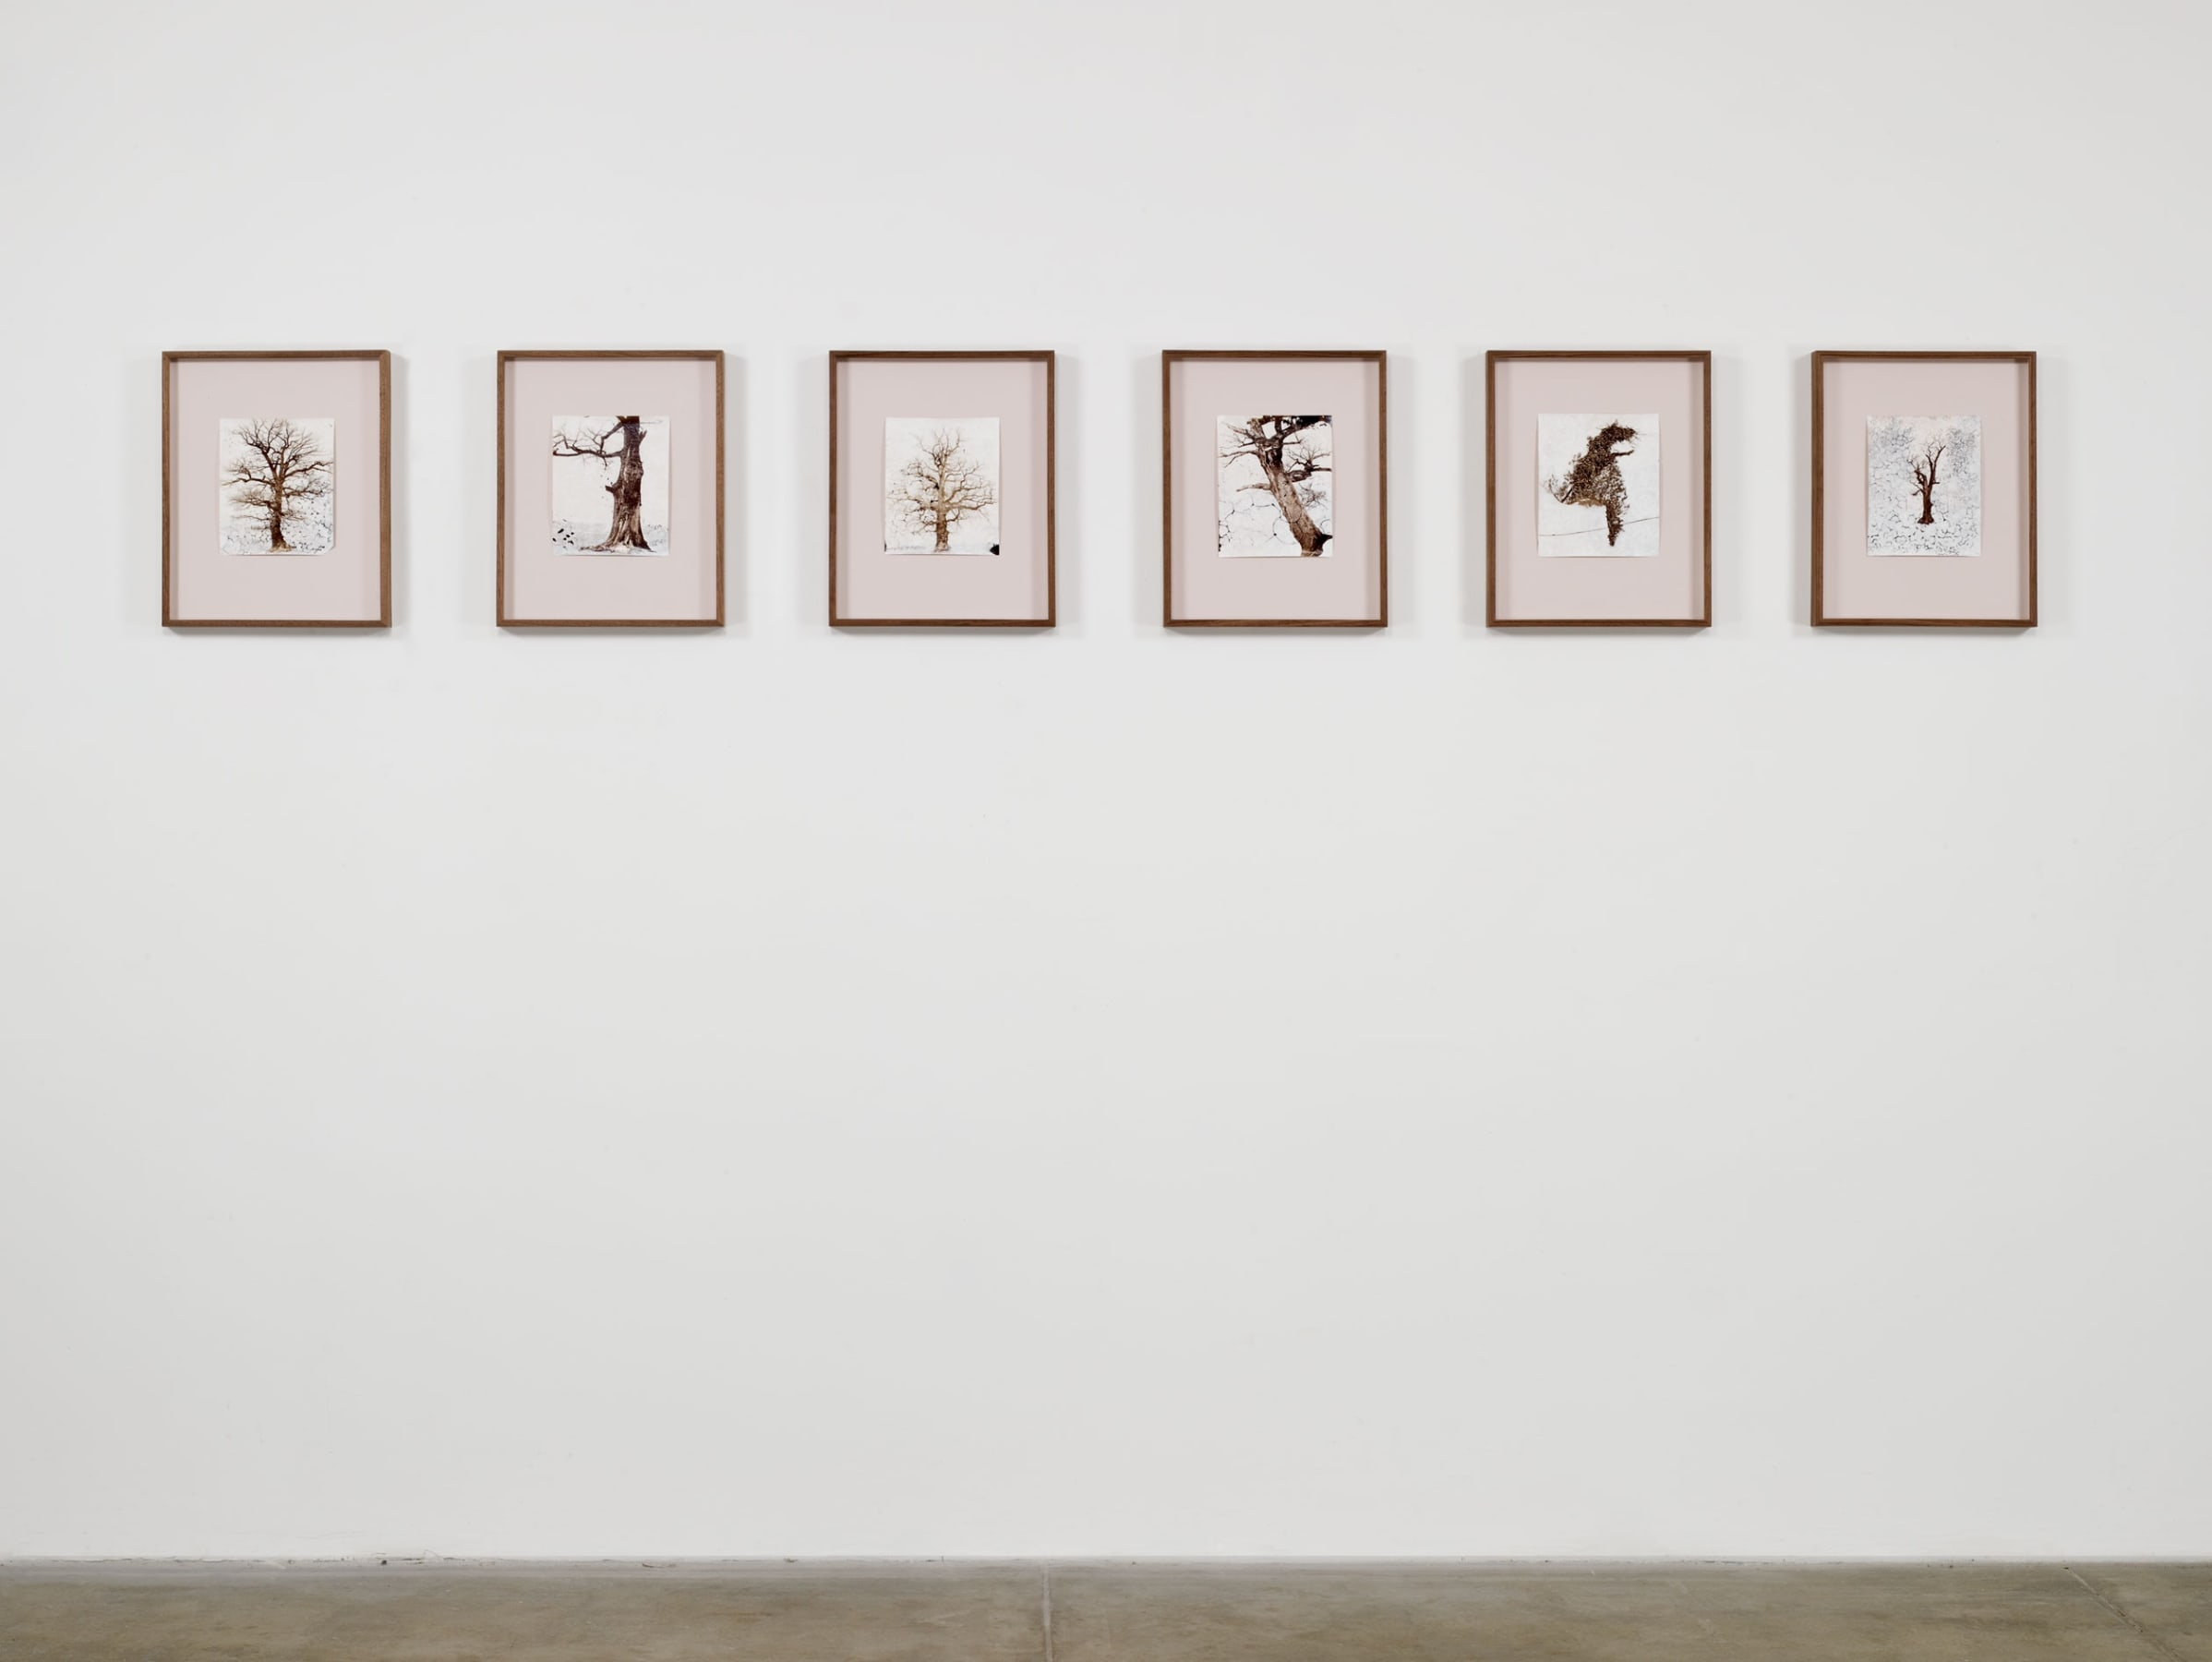 Six framed drawings of bare trees are aligned on a white wall.